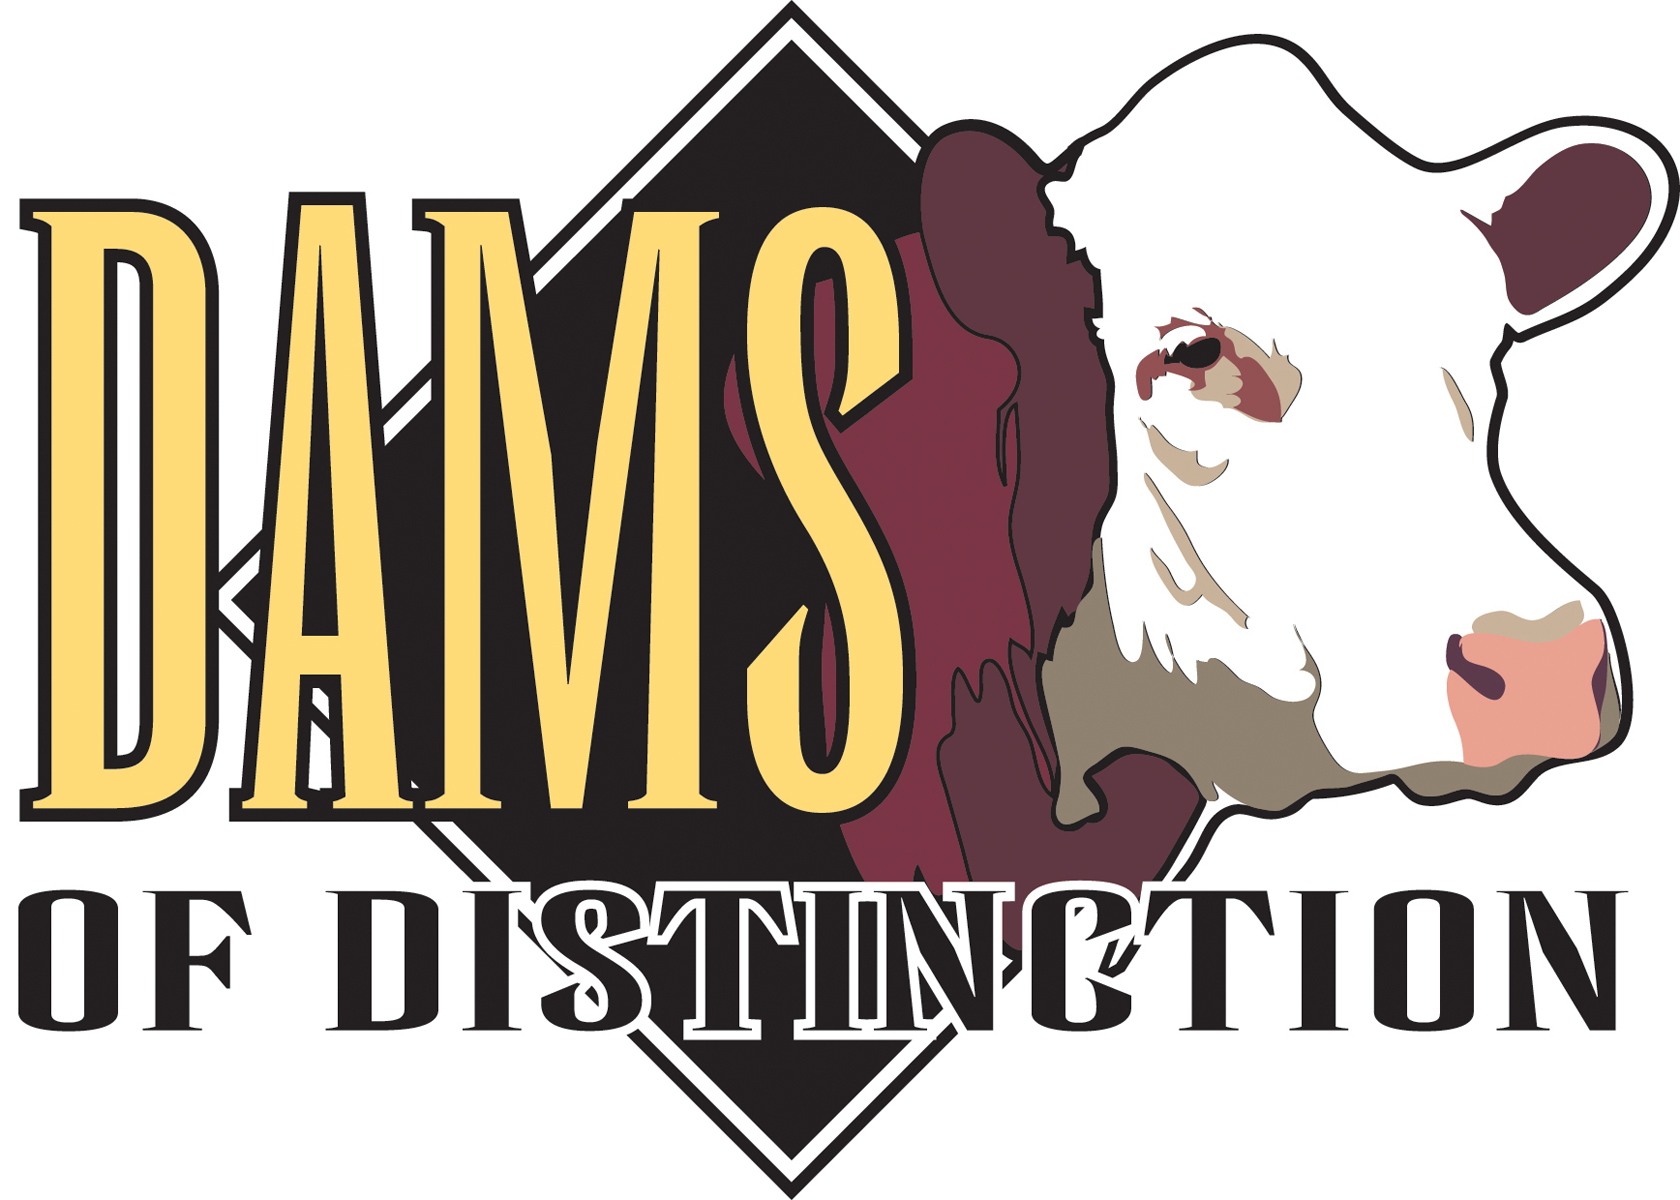 Beef clipart hereford cow Distinction Dams of DamsofDistinction